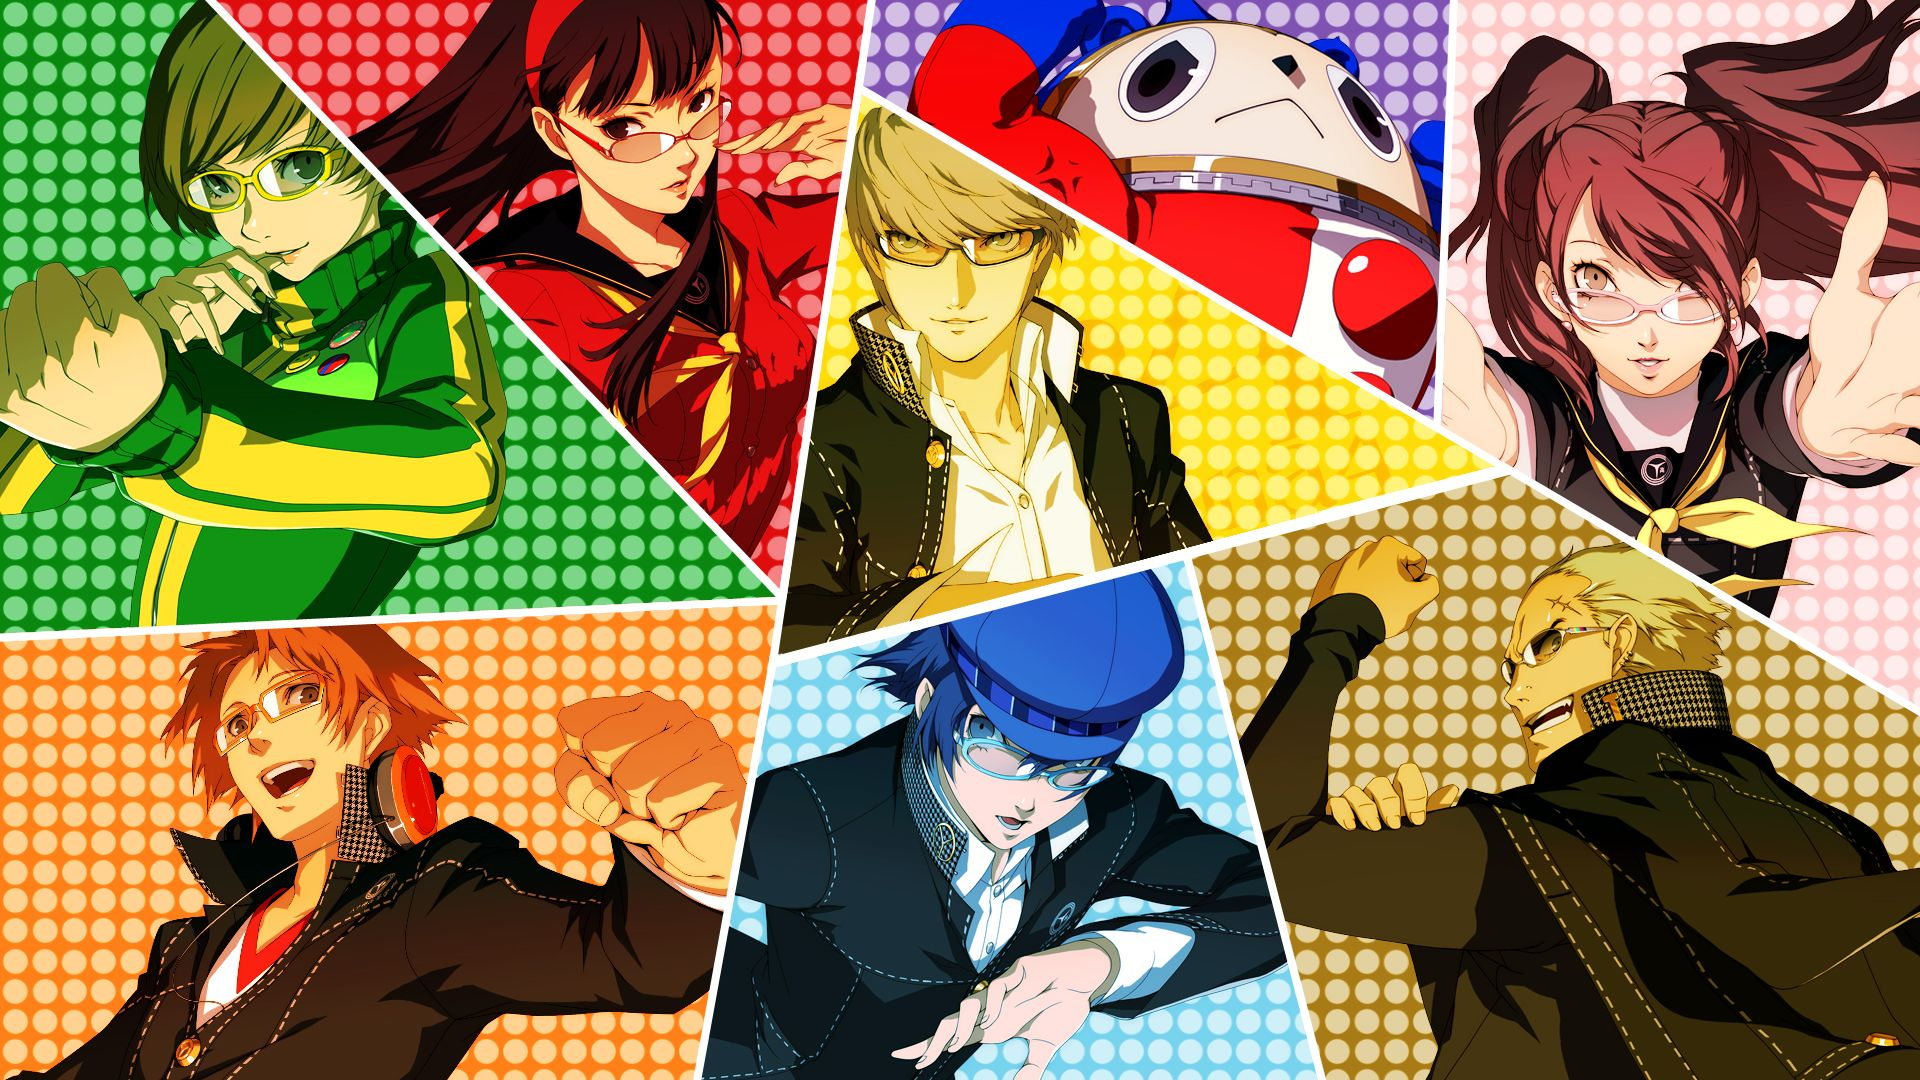 Hd Persona 4 Wallpapers Wallpapers Backgrounds Images Art Photos Persona 4 Wallpaper Persona 4 Persona